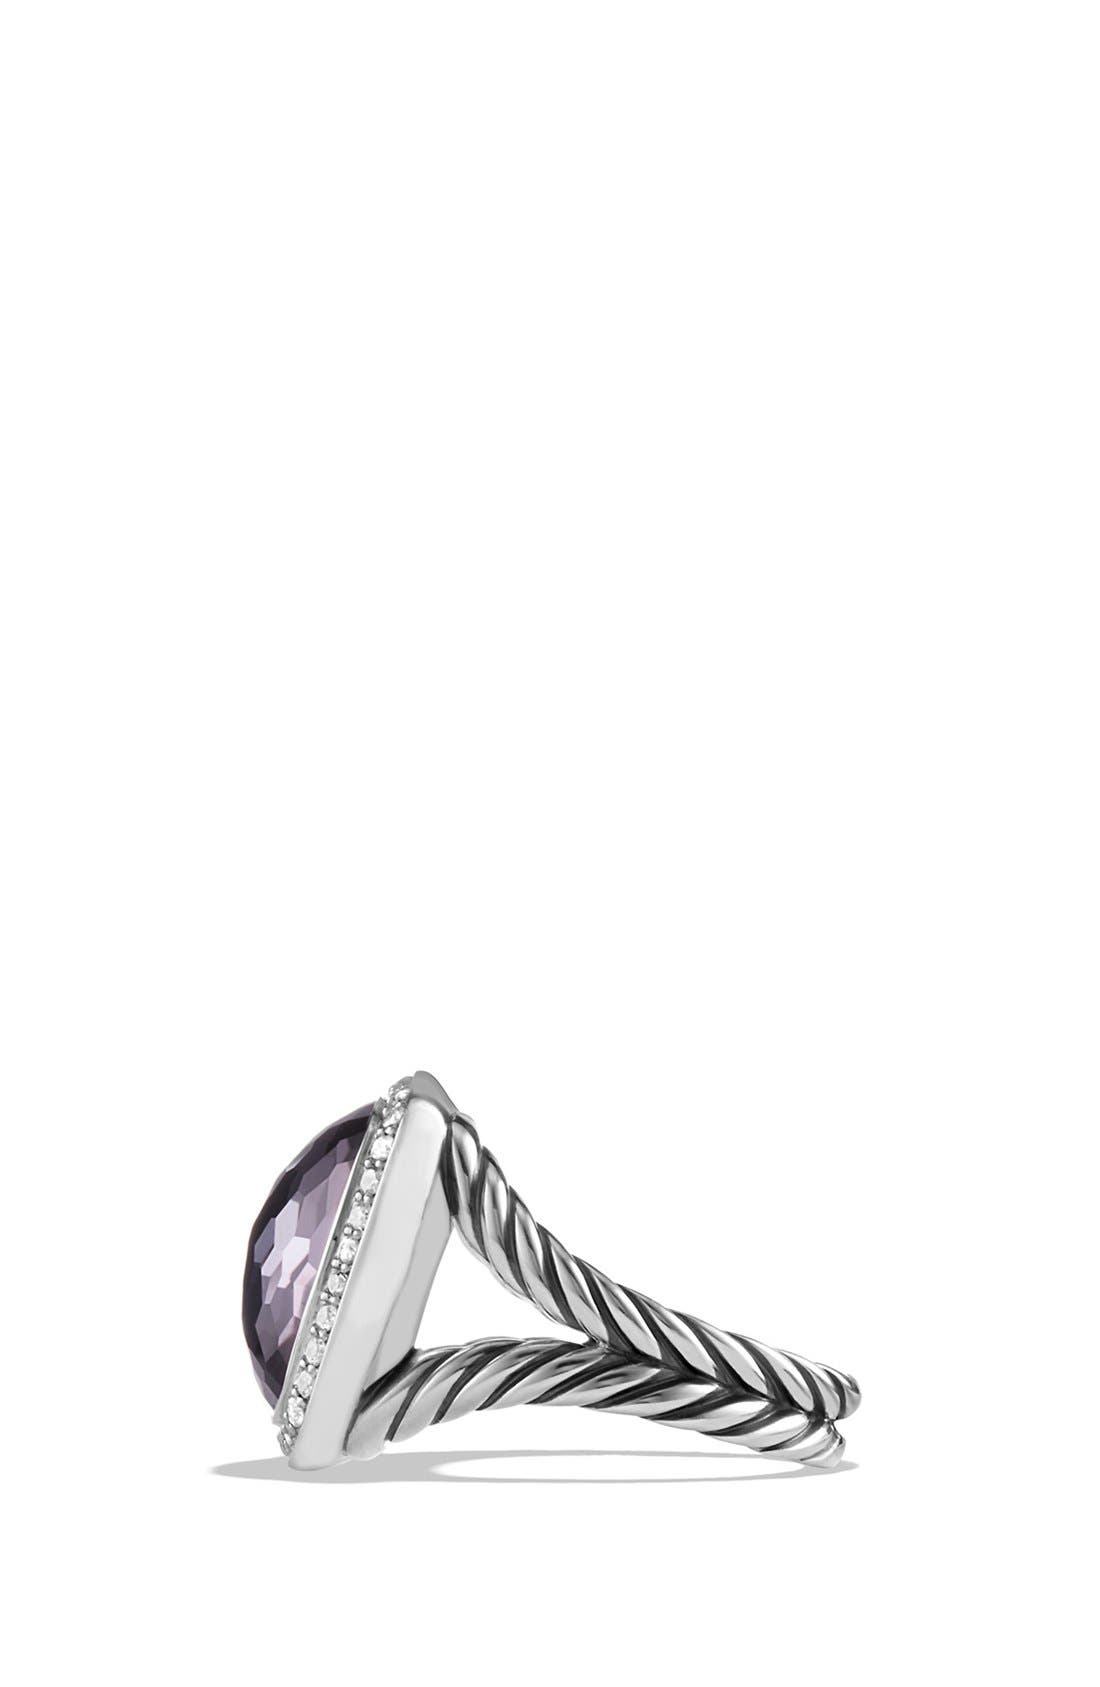 'Albion' Ring with Semiprecious Stone and Diamonds,                             Alternate thumbnail 3, color,                             Amethyst/ Hematine